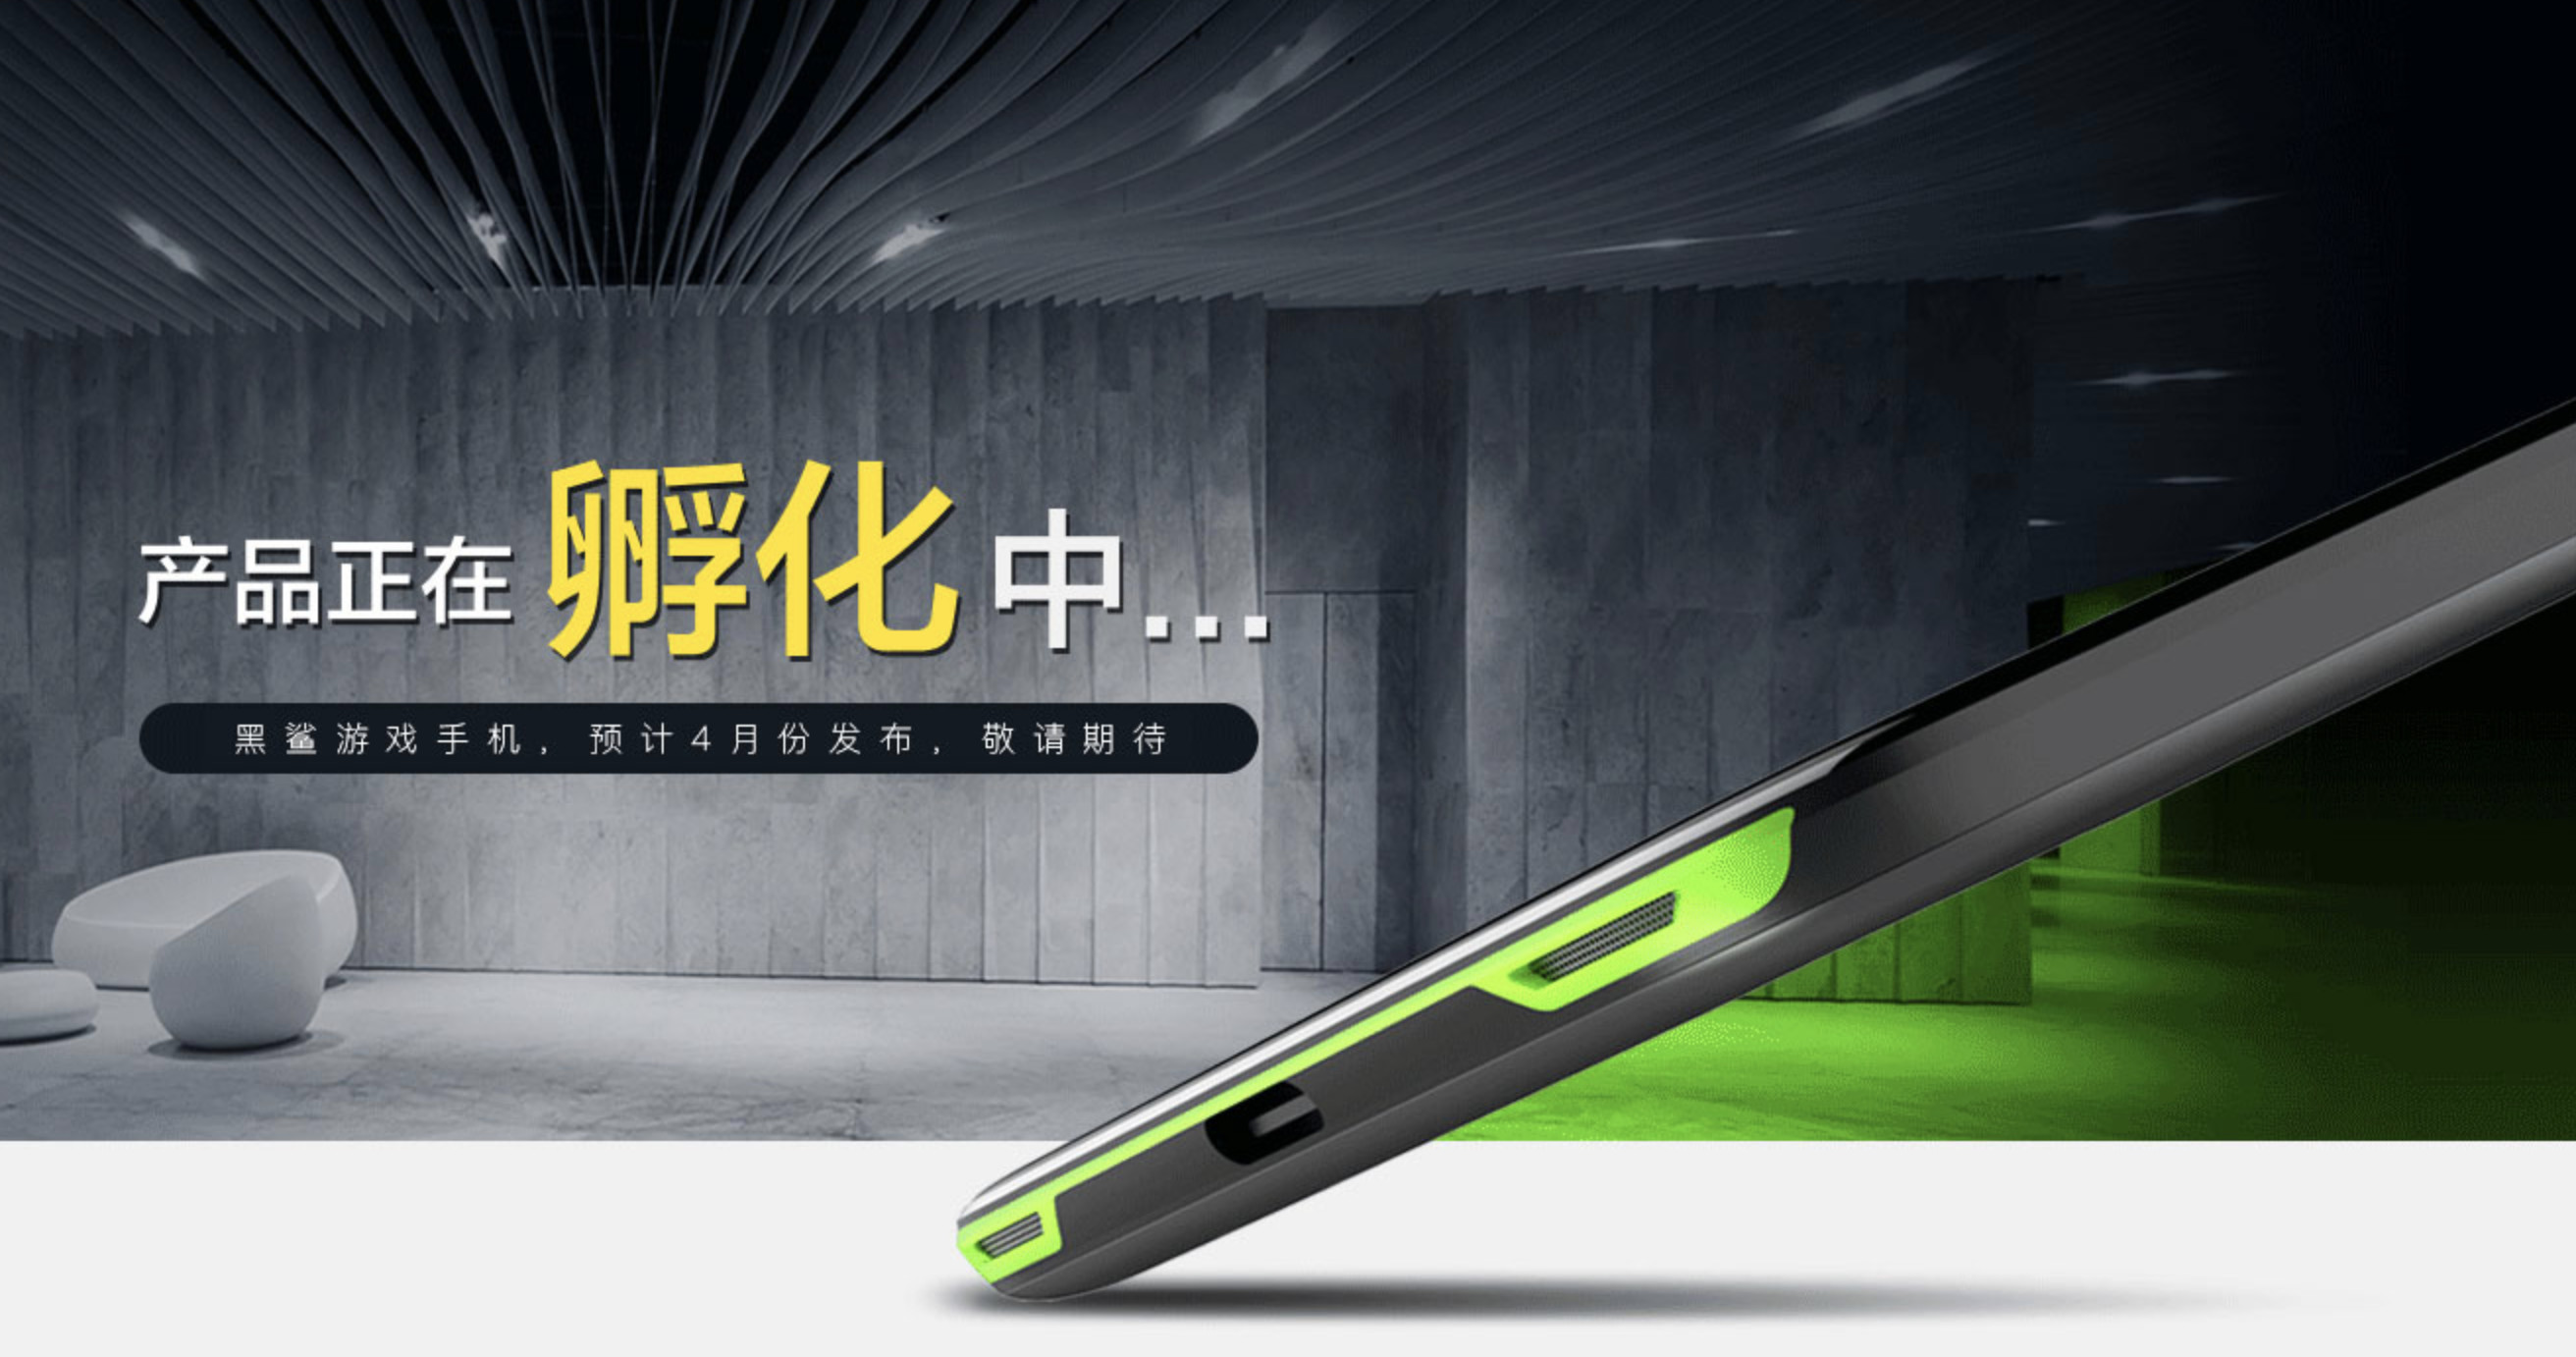 Xiaomi's Black Shark Gaming Phone Coming on April 13